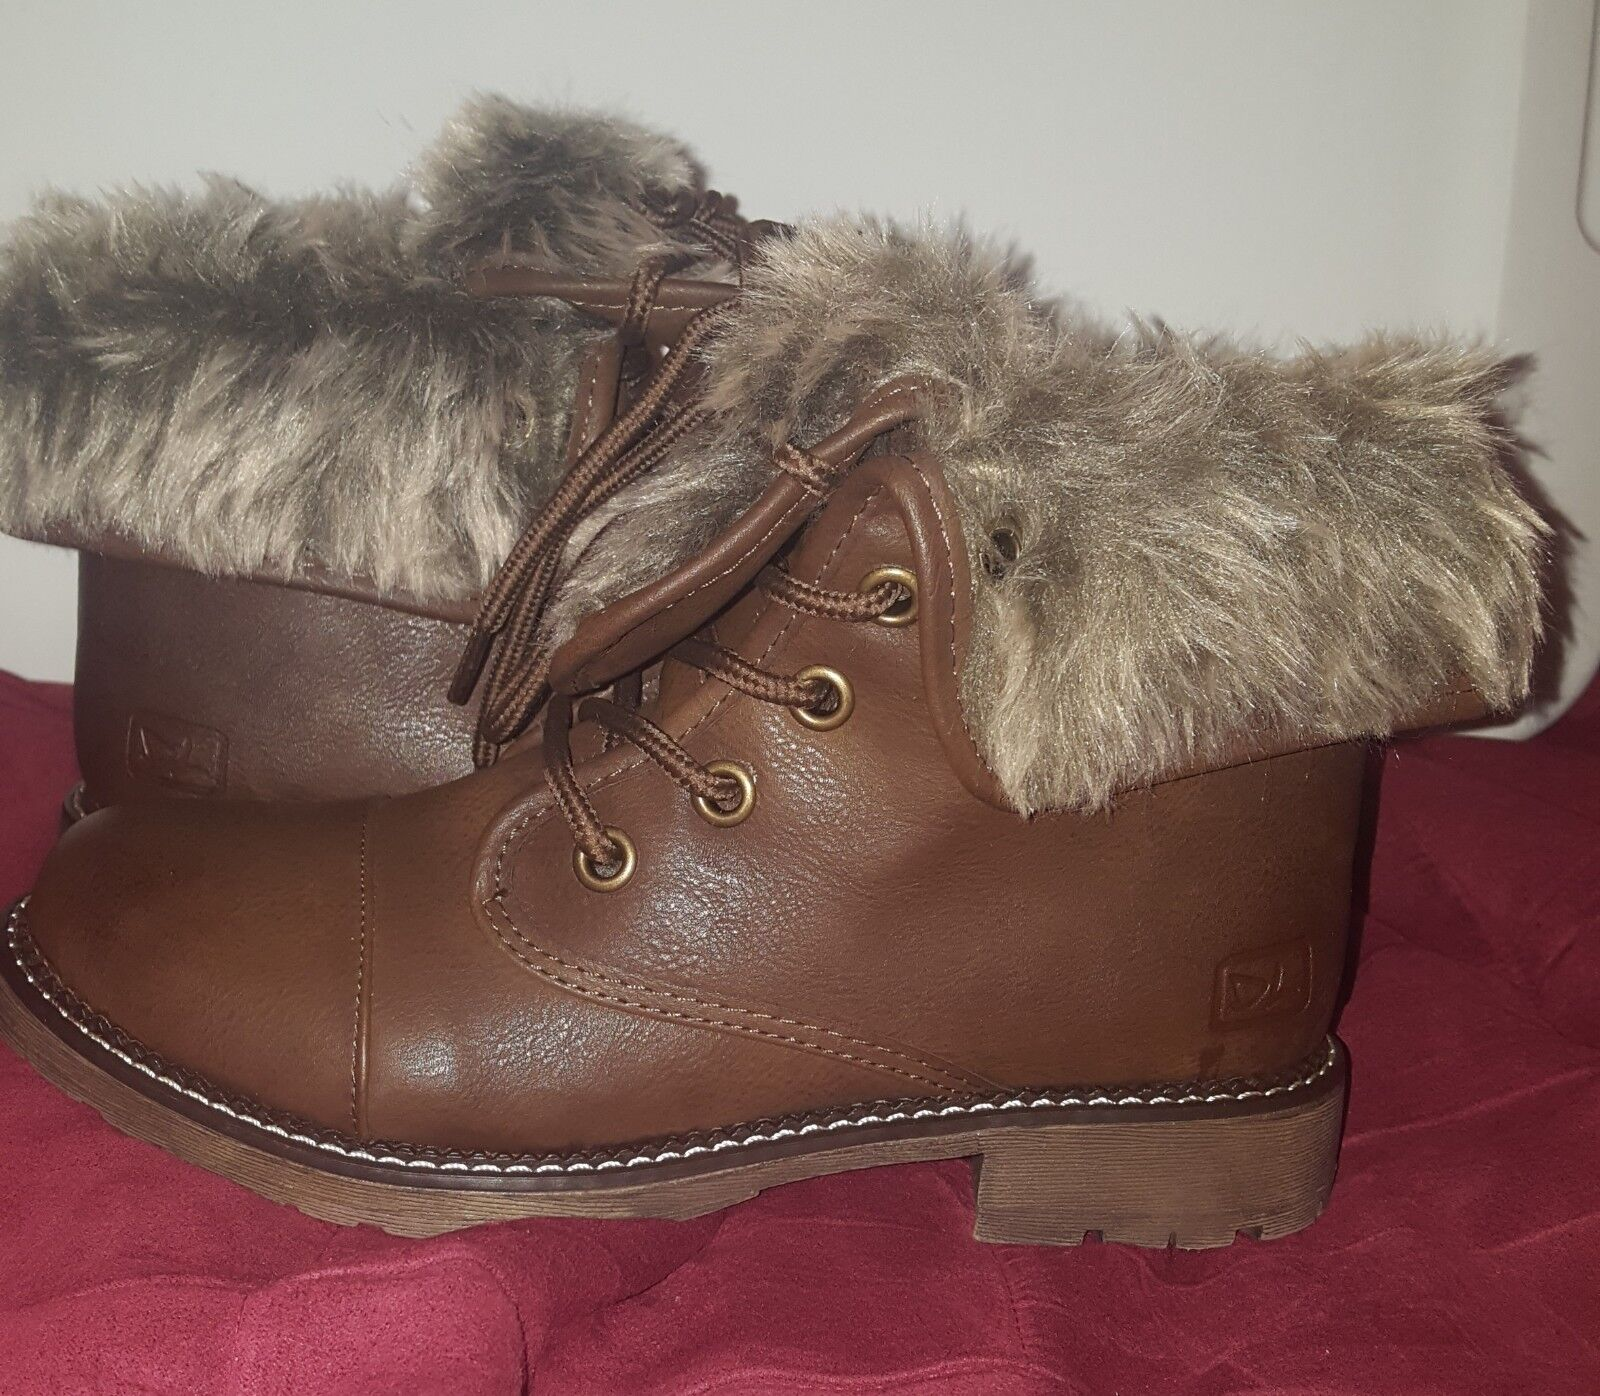 Dirty Laundry Brown boots fur lined, Brand new, size 6